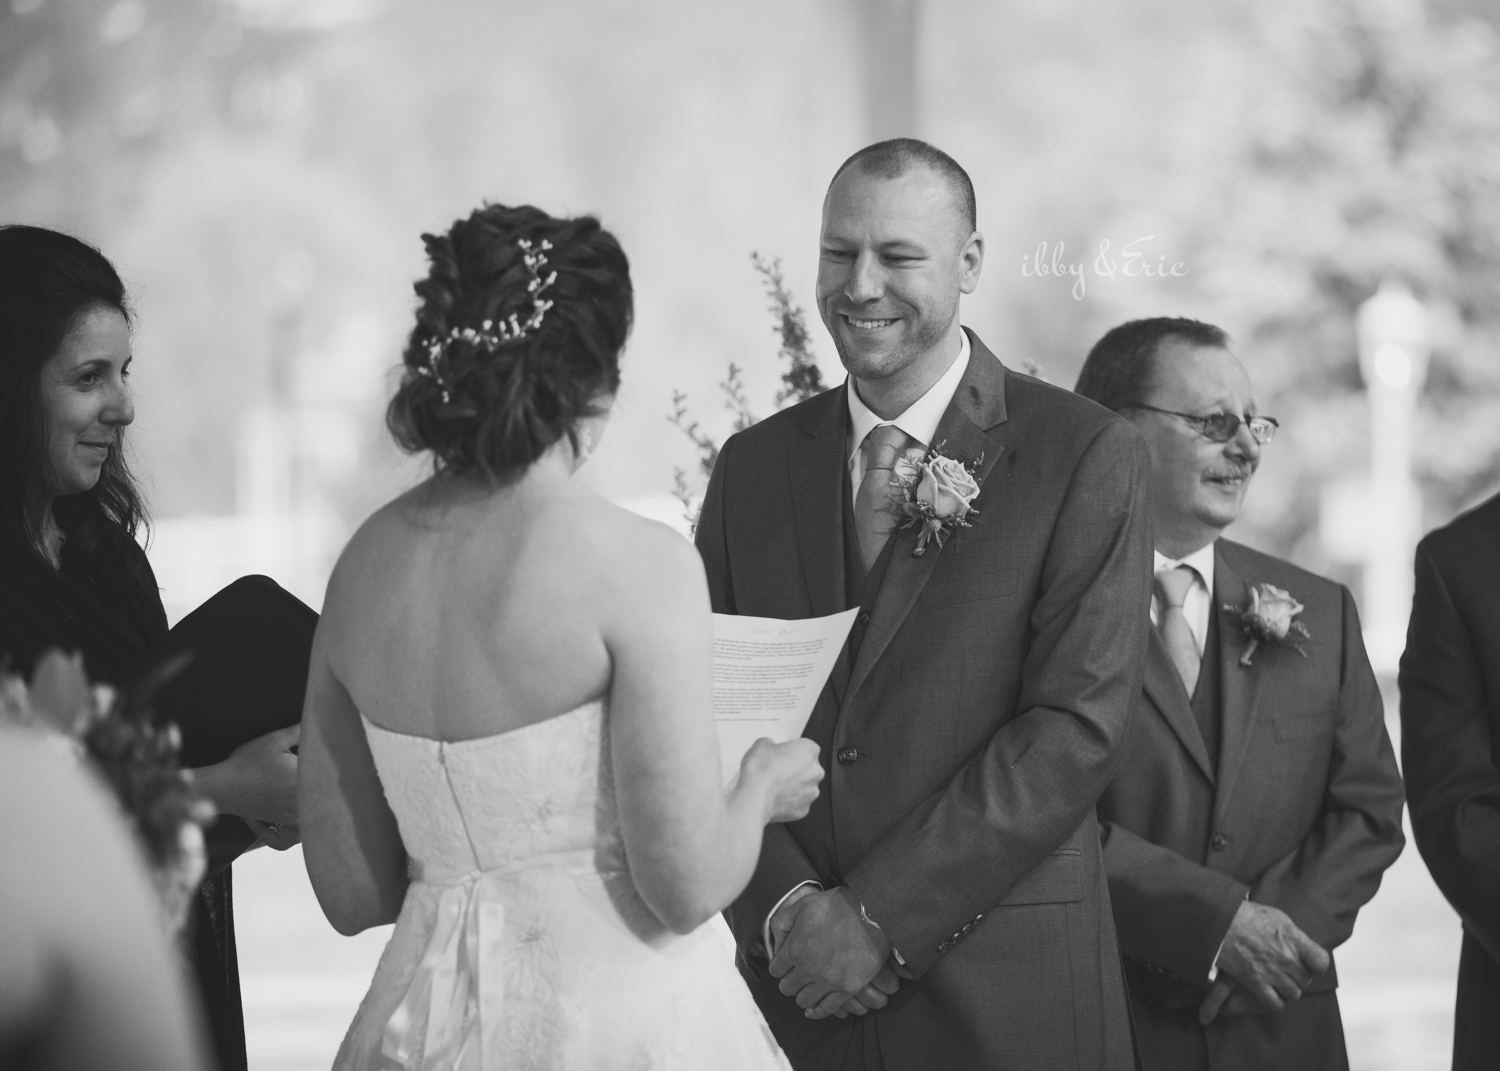 Black and white photo of the groom smiling as his wife reads her wedding vows.